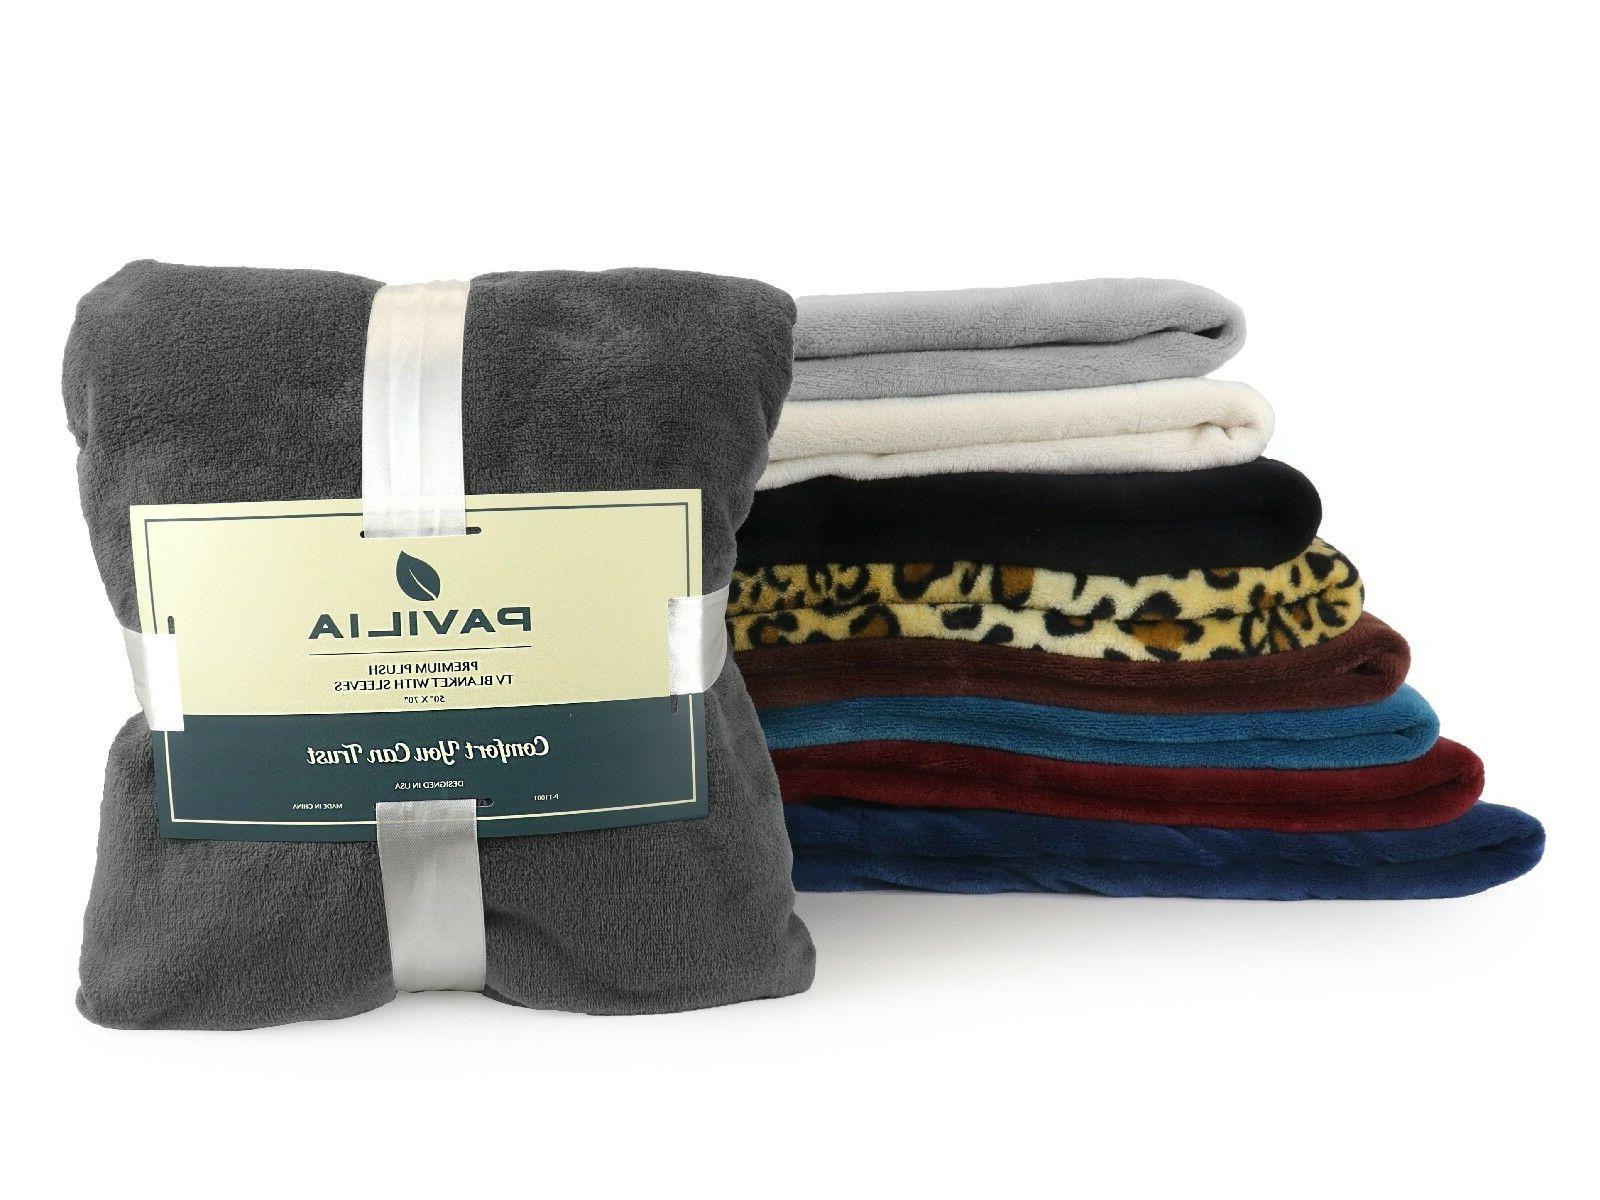 Soft Blanket with Sleeves and Robe Snuggie TV Blanket